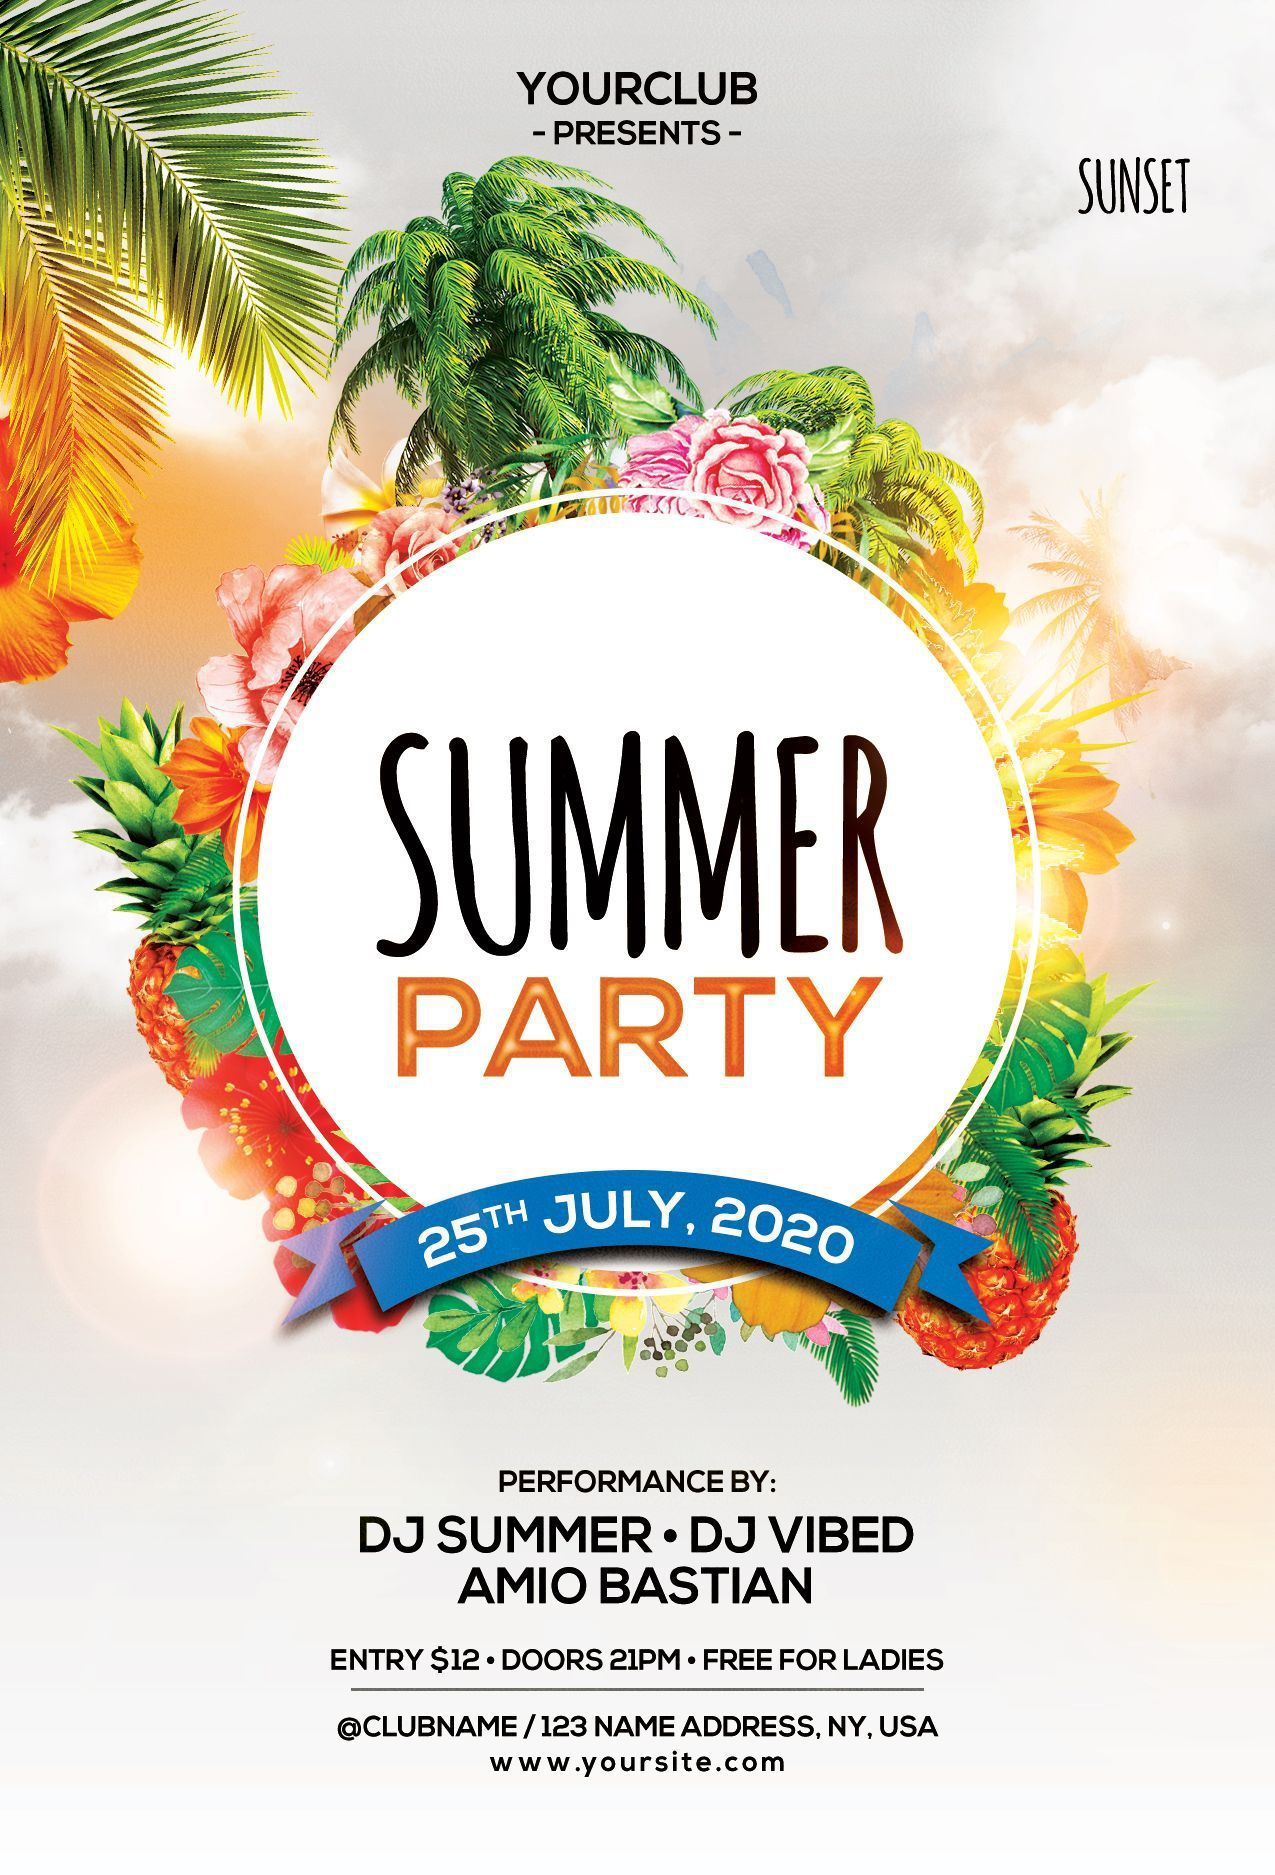 002 Astounding Summer Party Flyer Template Free Download Highest Clarity Full